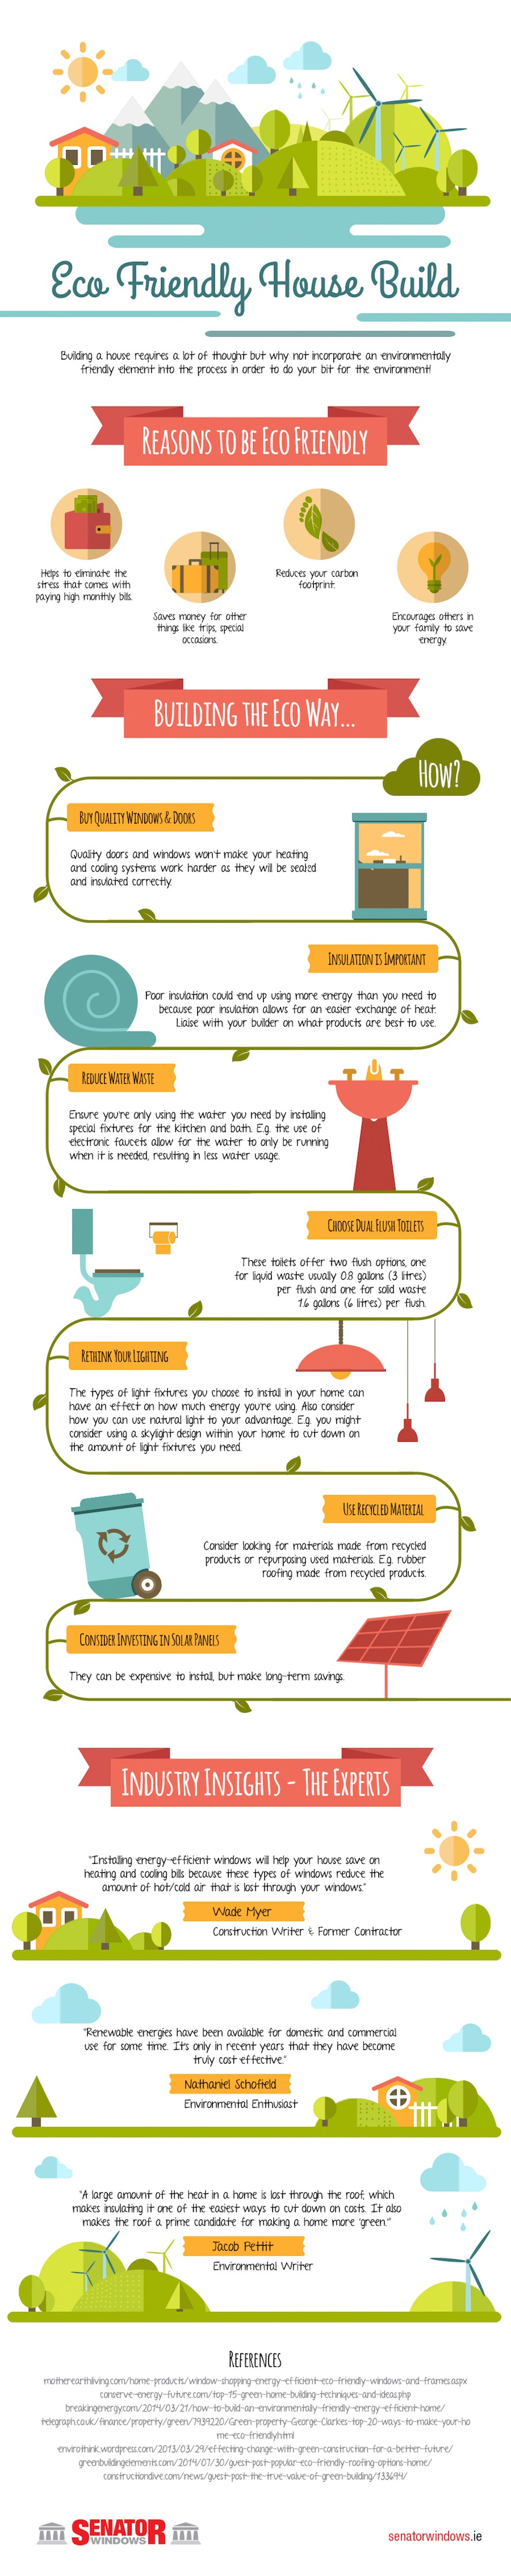 Building An Eco Friendly Home infographic: helpful tips on making an eco-friendly home